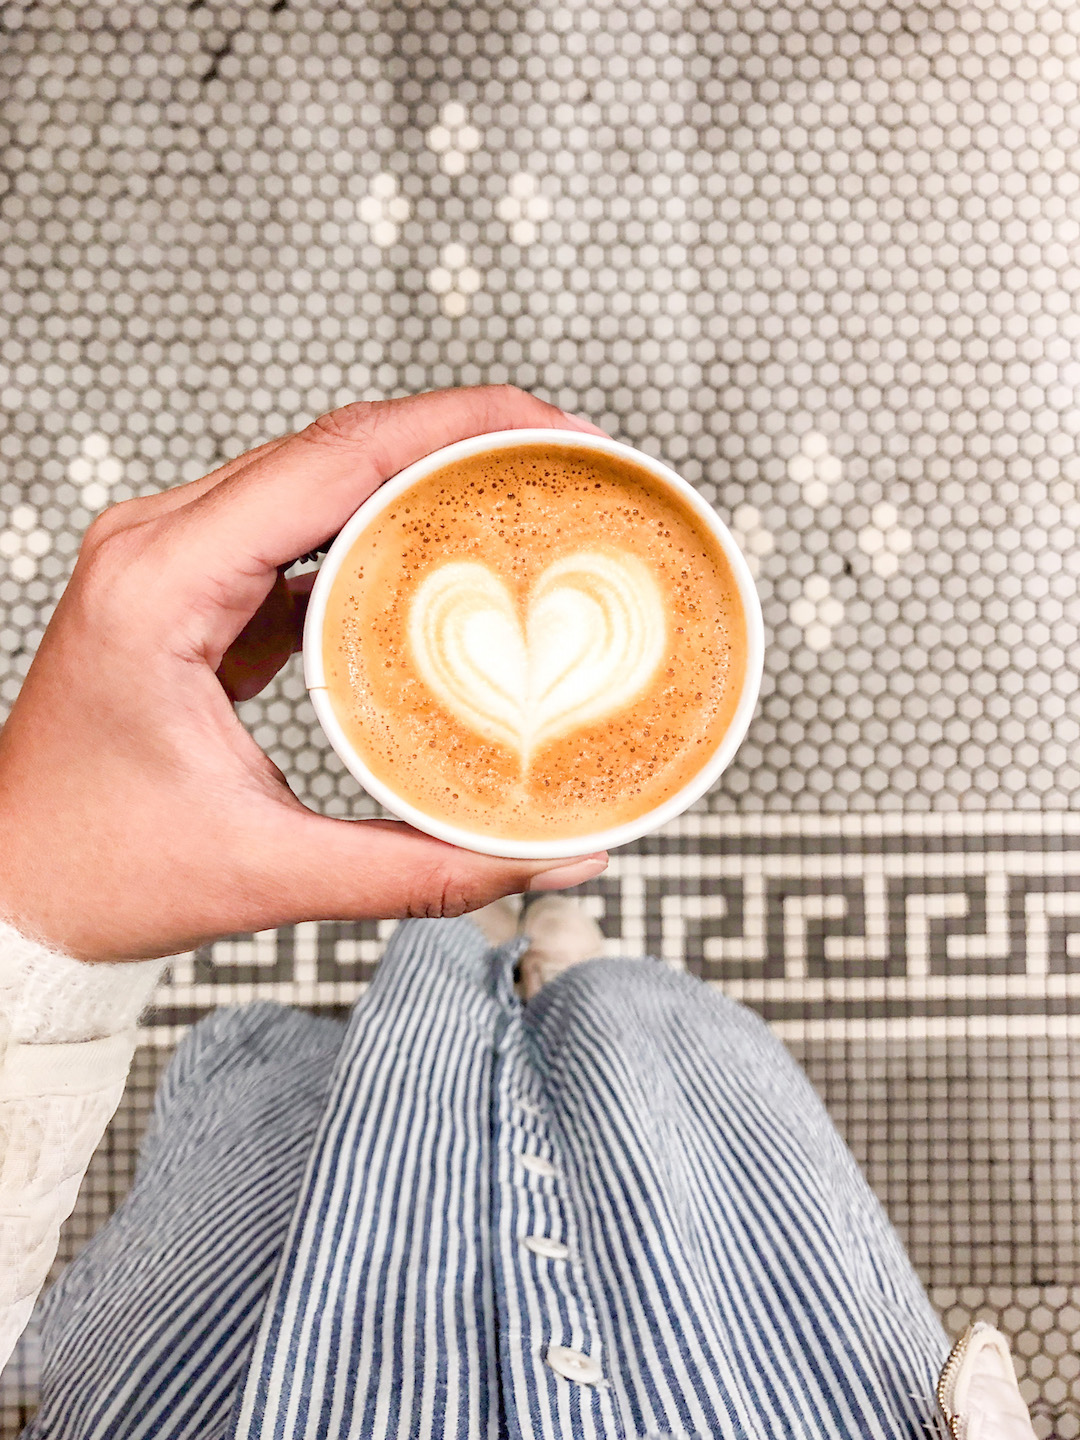 Her_Travel_Edit_Cappuccino